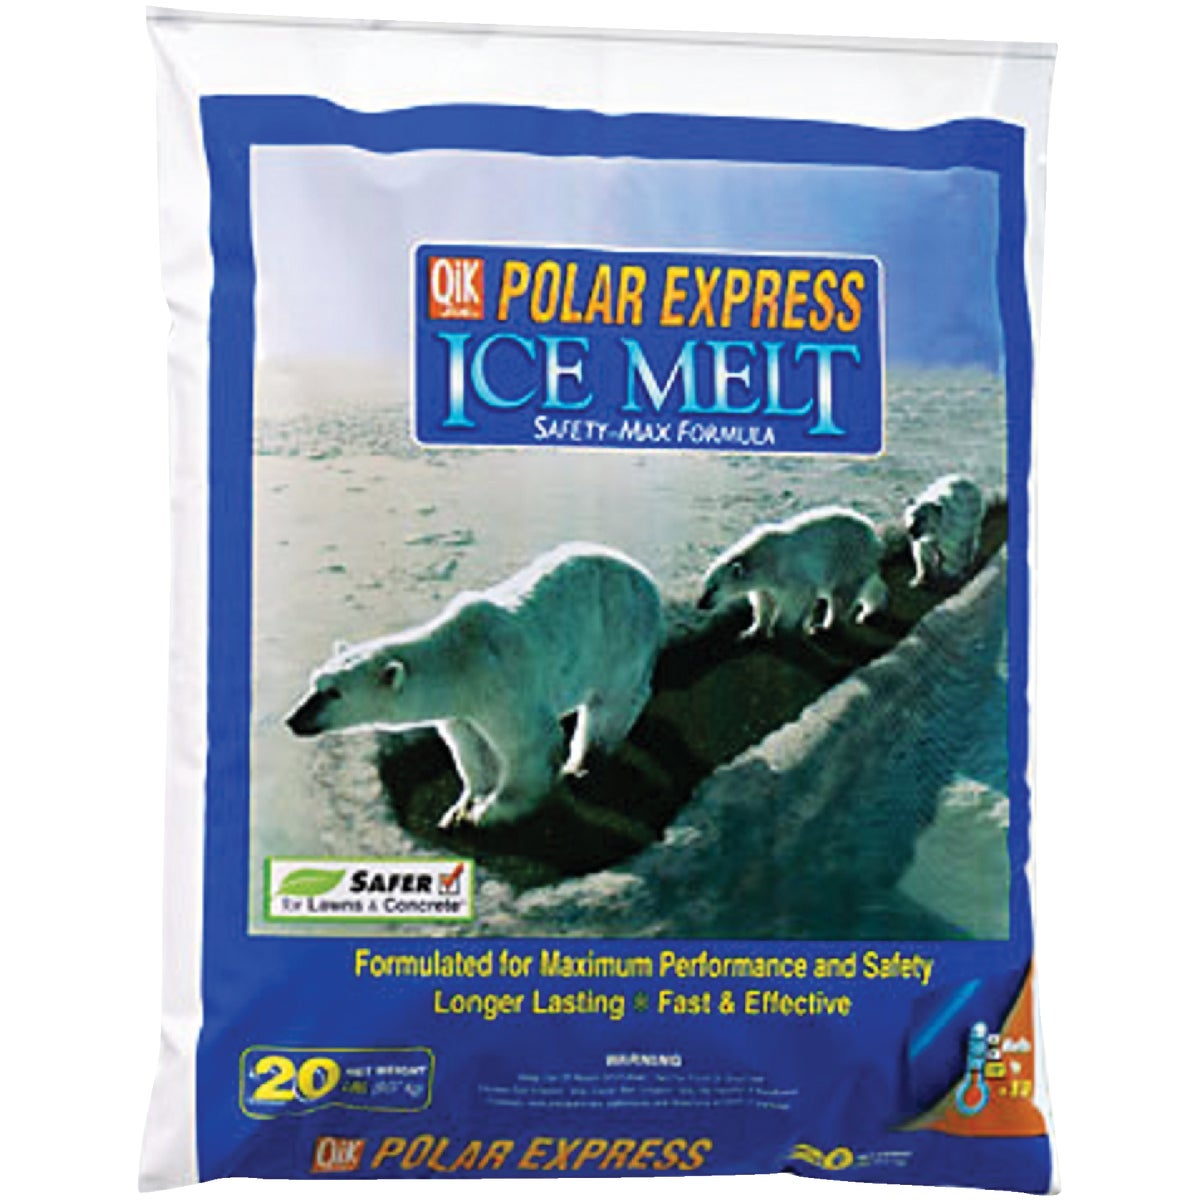 20# POL EXPRESS ICE MELT